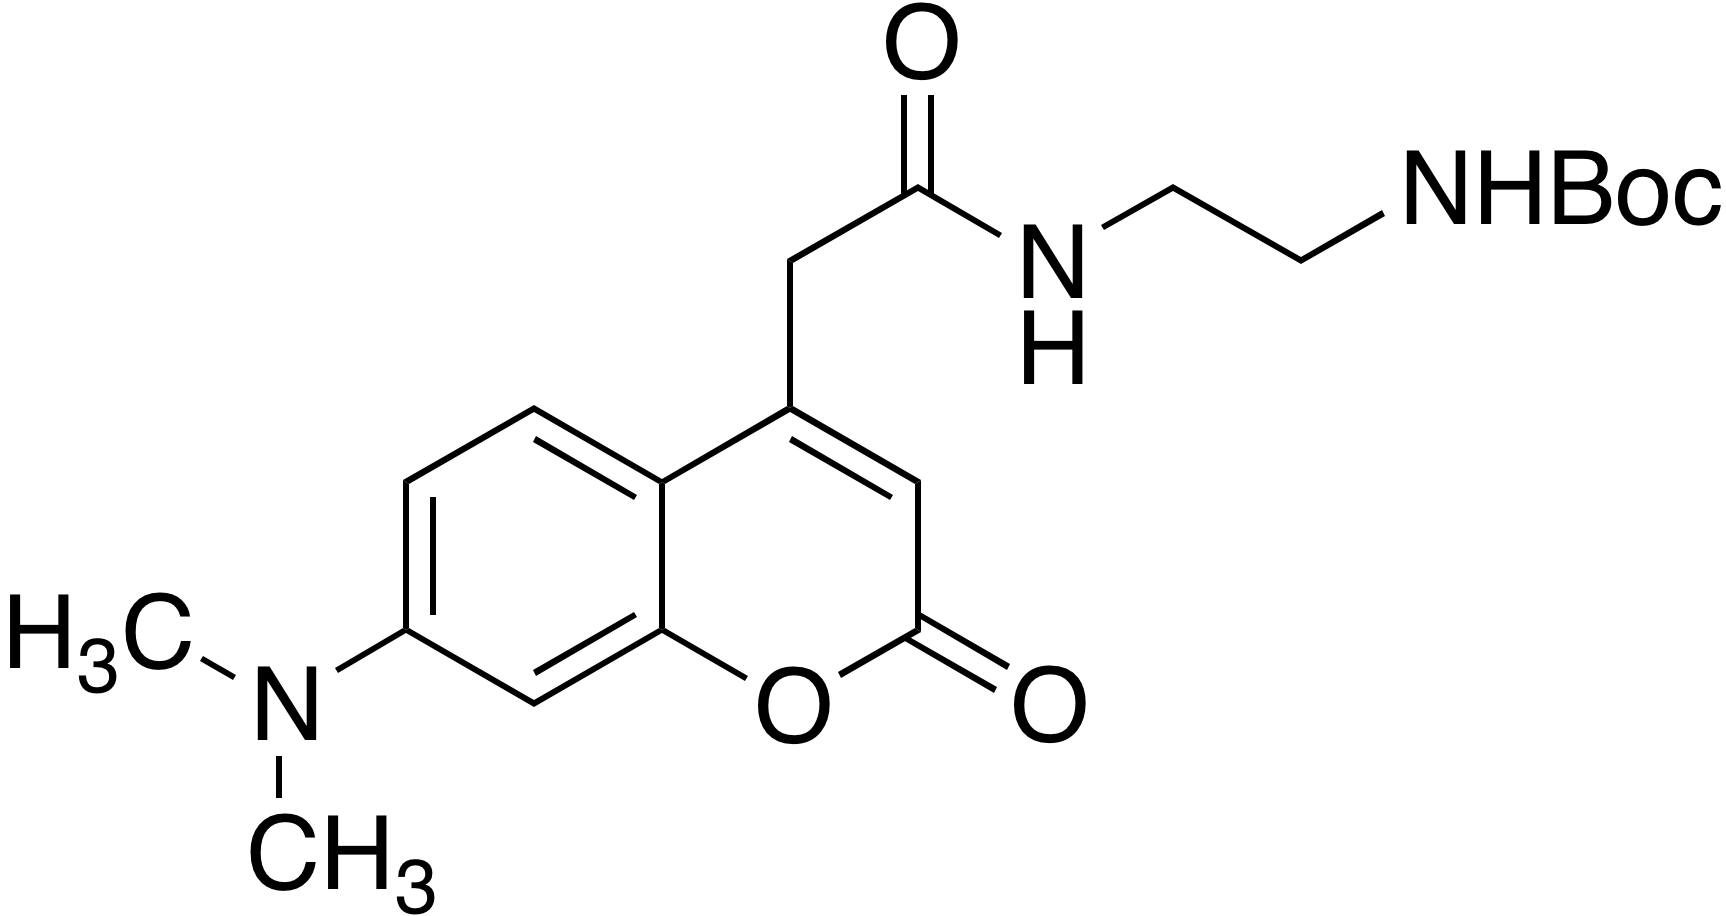 N-(2-Boc-aminoethyl)-7-dimethylaminocoumarin-4-acetamide